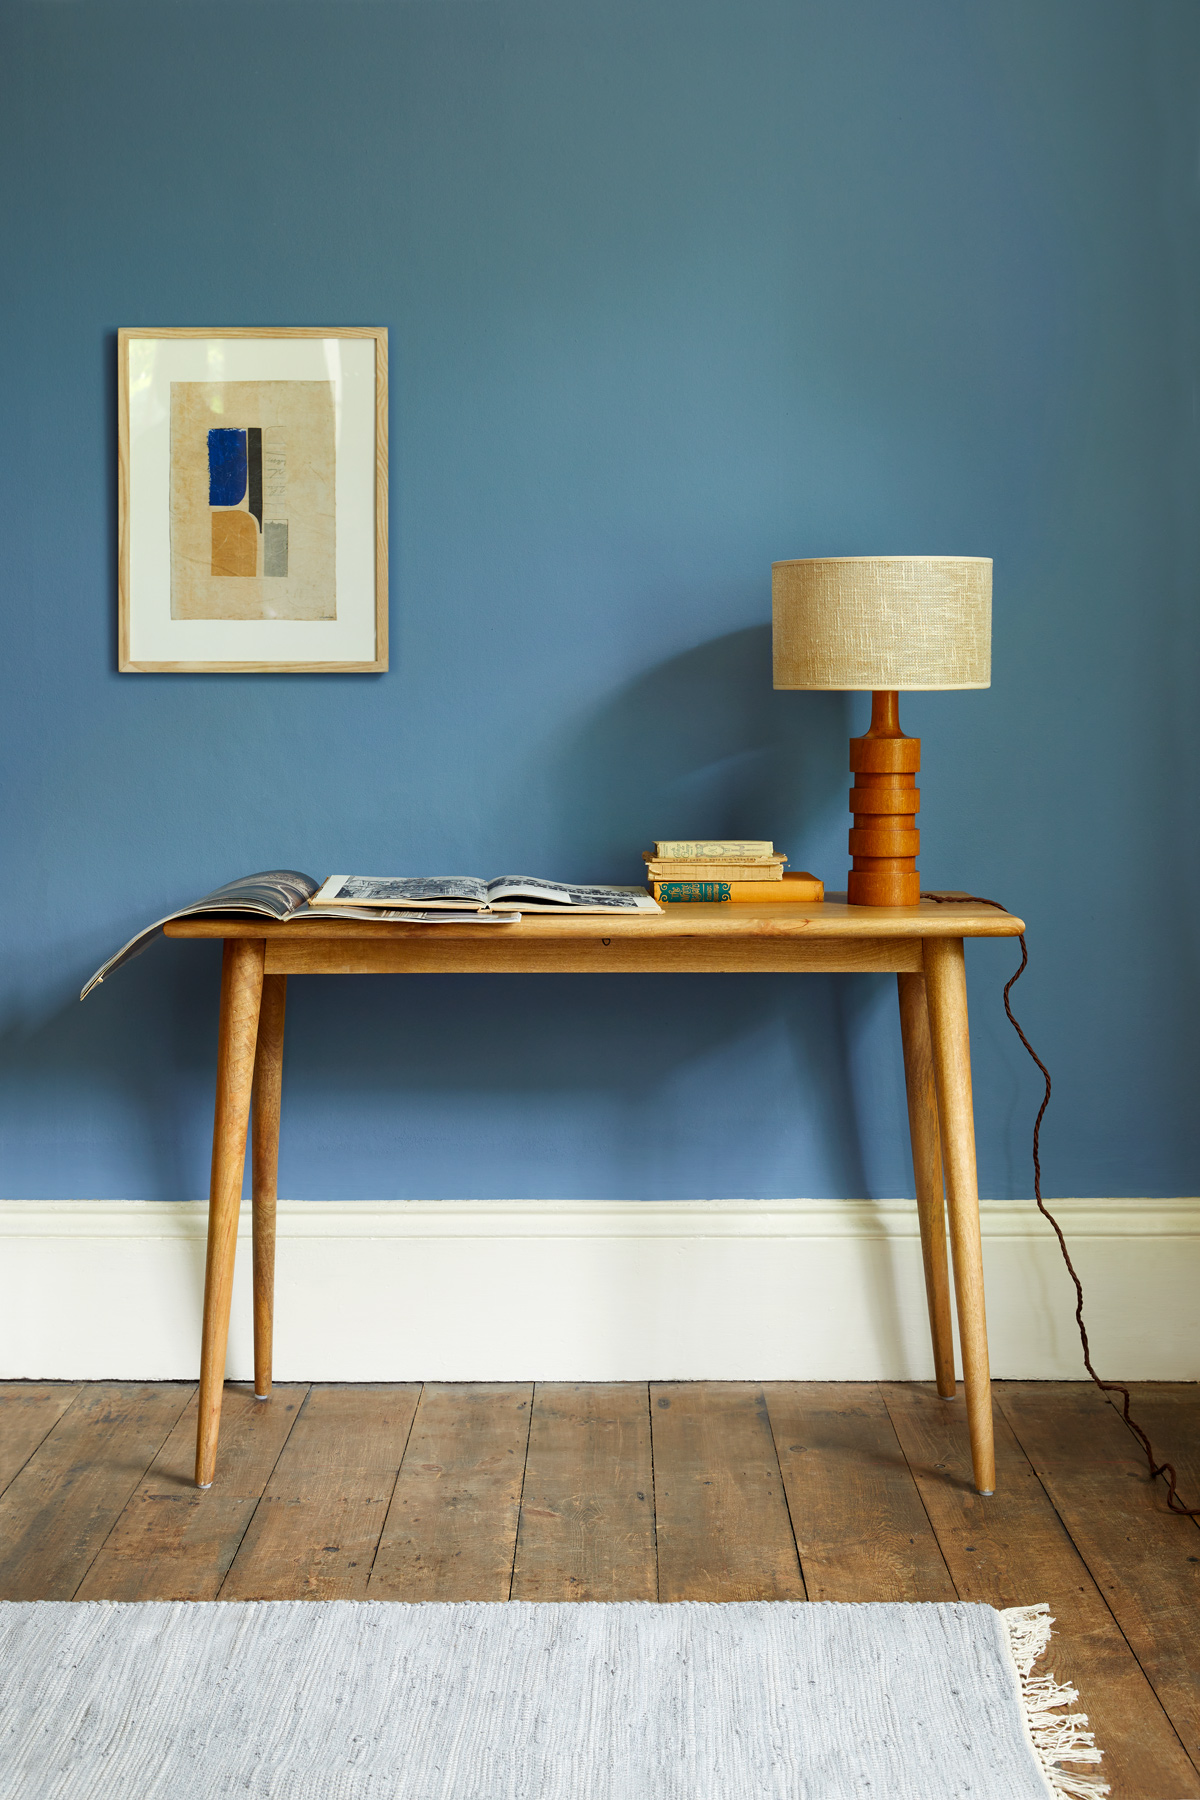 Skipper is a warm denim blue that will intensify in smaller spaces